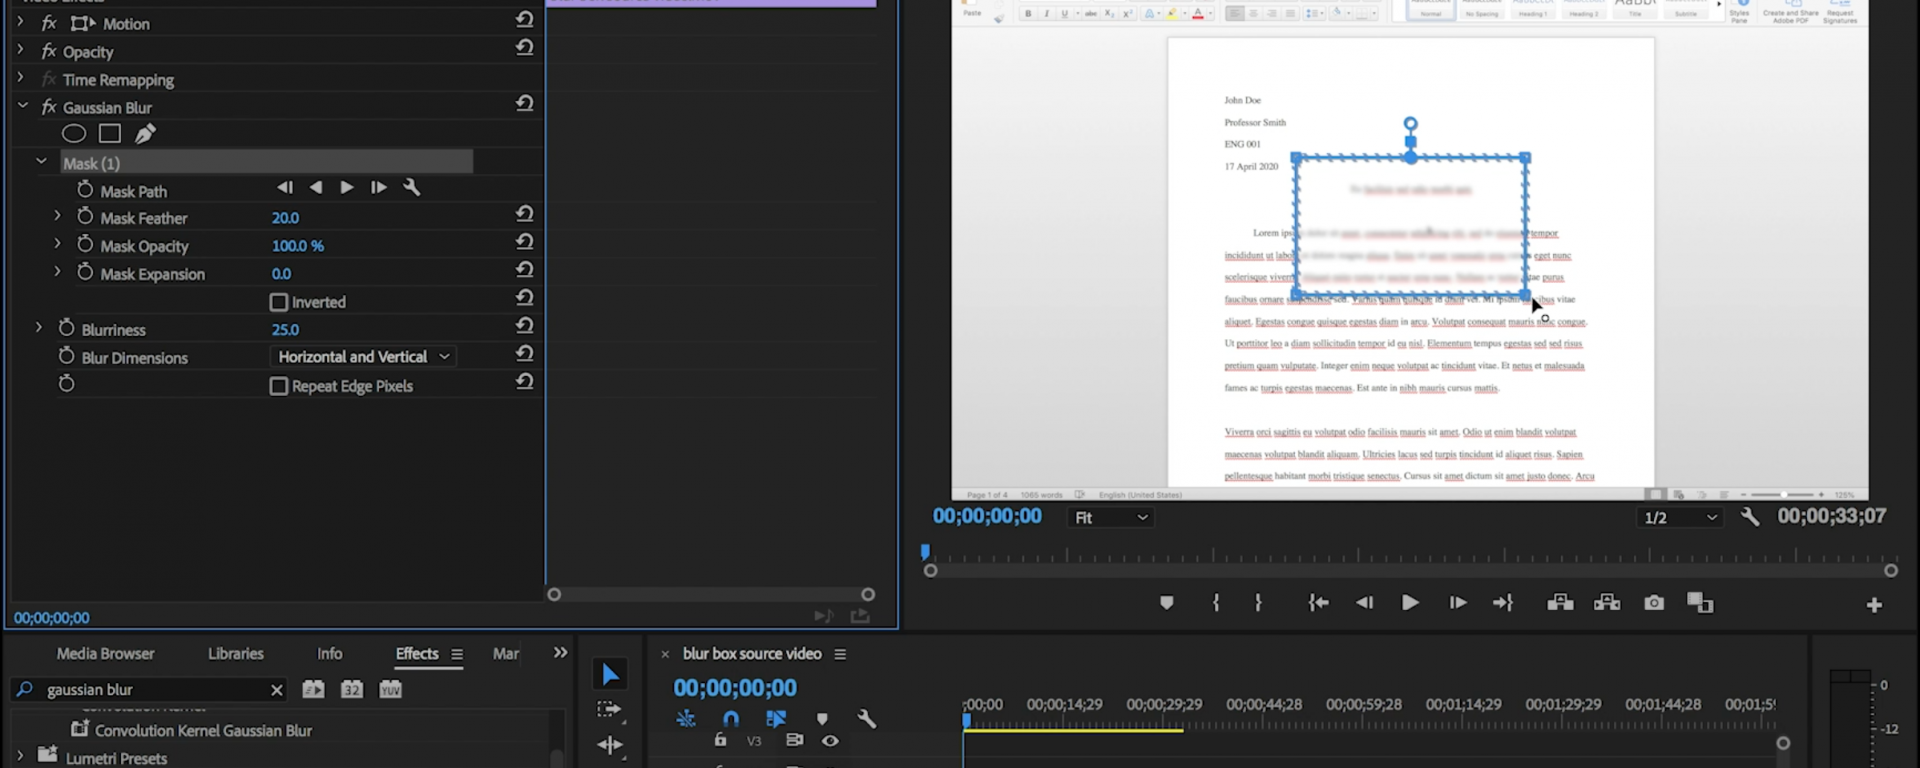 Adobe Premiere interface with blurring box featured